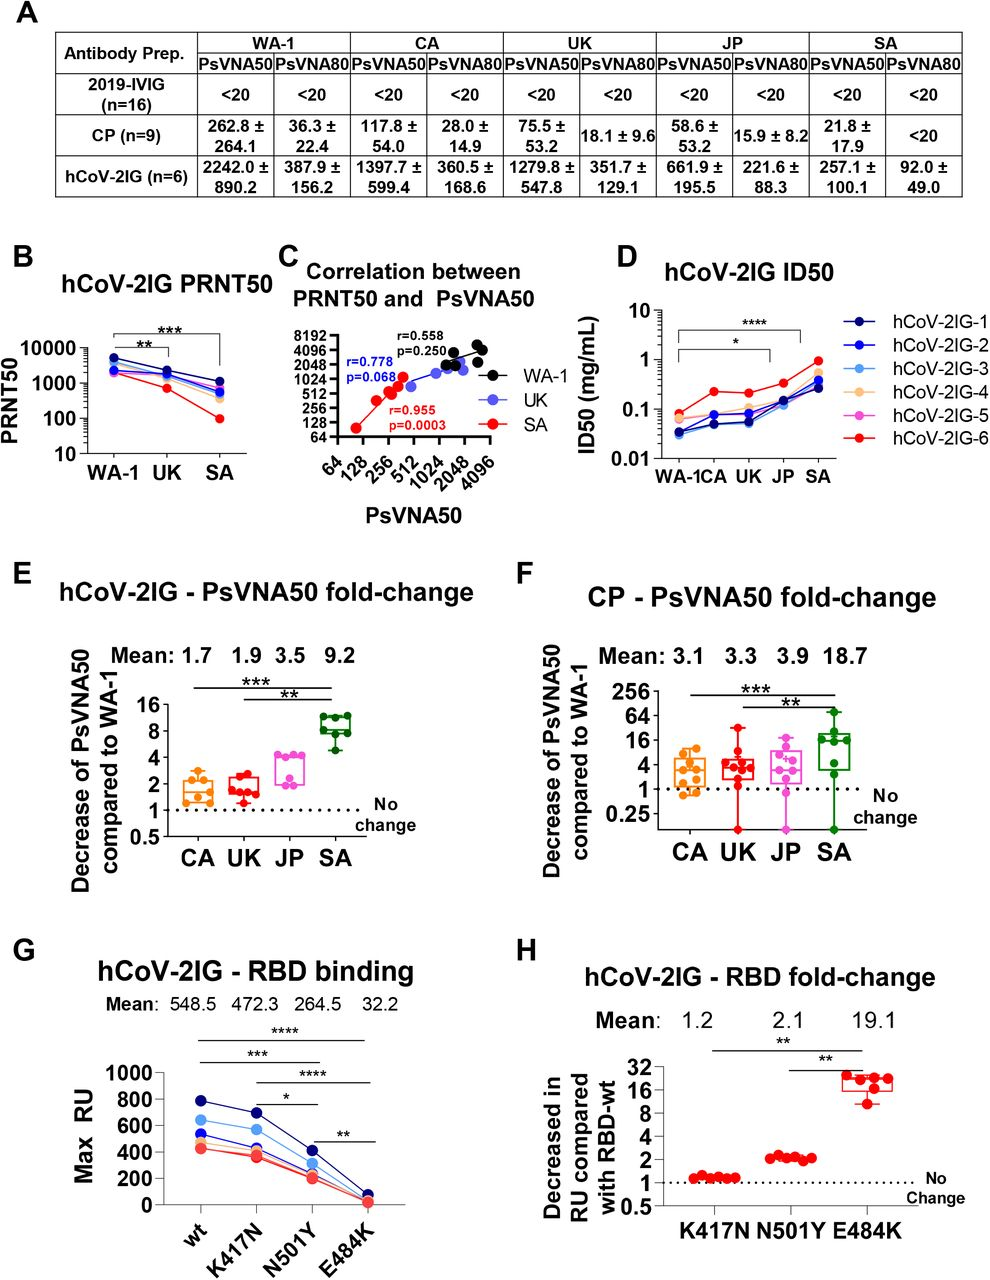 Neutralizing antibody titers and RBD binding antibodies of convalescent plasma and hCoV-2IG against various SARS-CoV-2 strains. (A) SARS-CoV-2 neutralizing antibody titers in CP, 2019-IVIG and hCoV-2IG preparations as determined by pseudovirus neutralization assay in 293-ACE2-TMPRSS2 cells with SARS-CoV-2 WA-1 strain, CA variant (B.1.429), UK variant (B.1.1.7), JP variant (P.1) or SA variant (B.1.351). PsVNA50 (50% neutralization titer) and PsVNA80 (80% neutralization titer) titers for control pre-pandemic 2019-IVIG (n=16), convalescent plasma (n =9) and hCoV-2IG (n = 6) were calculated with GraphPad prism version 8. Data show mean values + SEM for PsVNA50 and PsVNA80 titers for each of the 3 antibody groups against the SARS-CoV-2 WA-1, CA, UK, JP and SA variants. (B) End-point virus neutralization titers for six hCoV-2IG lots using wild type authentic SARS-CoV-2 WA-1, UK and SA virus strains in a classical BSL3 neutralization assay based on a plaque assay was performed as described in Materials and Methods. (C) Pearson two-tailed correlations are reported for the calculation of correlation of PRNT50 titers against wild-type SARS-CoV-2 strains (WA-1, UK or SA) and PsVNA50 titers against corresponding pseudovirions expressing either WA-1, UK or SA spike in pseudovirion neutralization assays for the six hCOV-2IG lots. (D) Antibody concentration (in mg/mL) required for each of the six hCoV-2IG batches to achieve 50% neutralization of SARS-CoV-2 WA-1, CA, UK, JP or SA variants in PsVNA. (E-F) Fold-decrease in PsVNA50 neutralization titers against emerging variant strain CA (B.1.429), UK (B.1.1.7), JP (P.1) and SA (B.1.351) for six hCoV-2IG lots (E) and nine CP lots (F) in comparison with SARS-CoV-2 WA-1 strain. The numbers above the group shows the mean fold-change for each variant. (G-H) Total antibody binding (Max RU) of 1mg/mL for the six batches of hCoV-2IG (hCoV-2IG-1 to hCoV-2IG-6) to purified WA-1 RBD (RBD-wt) and RBD mutants: RBD-K417N, RBD-N501Y and RBD-E484K b